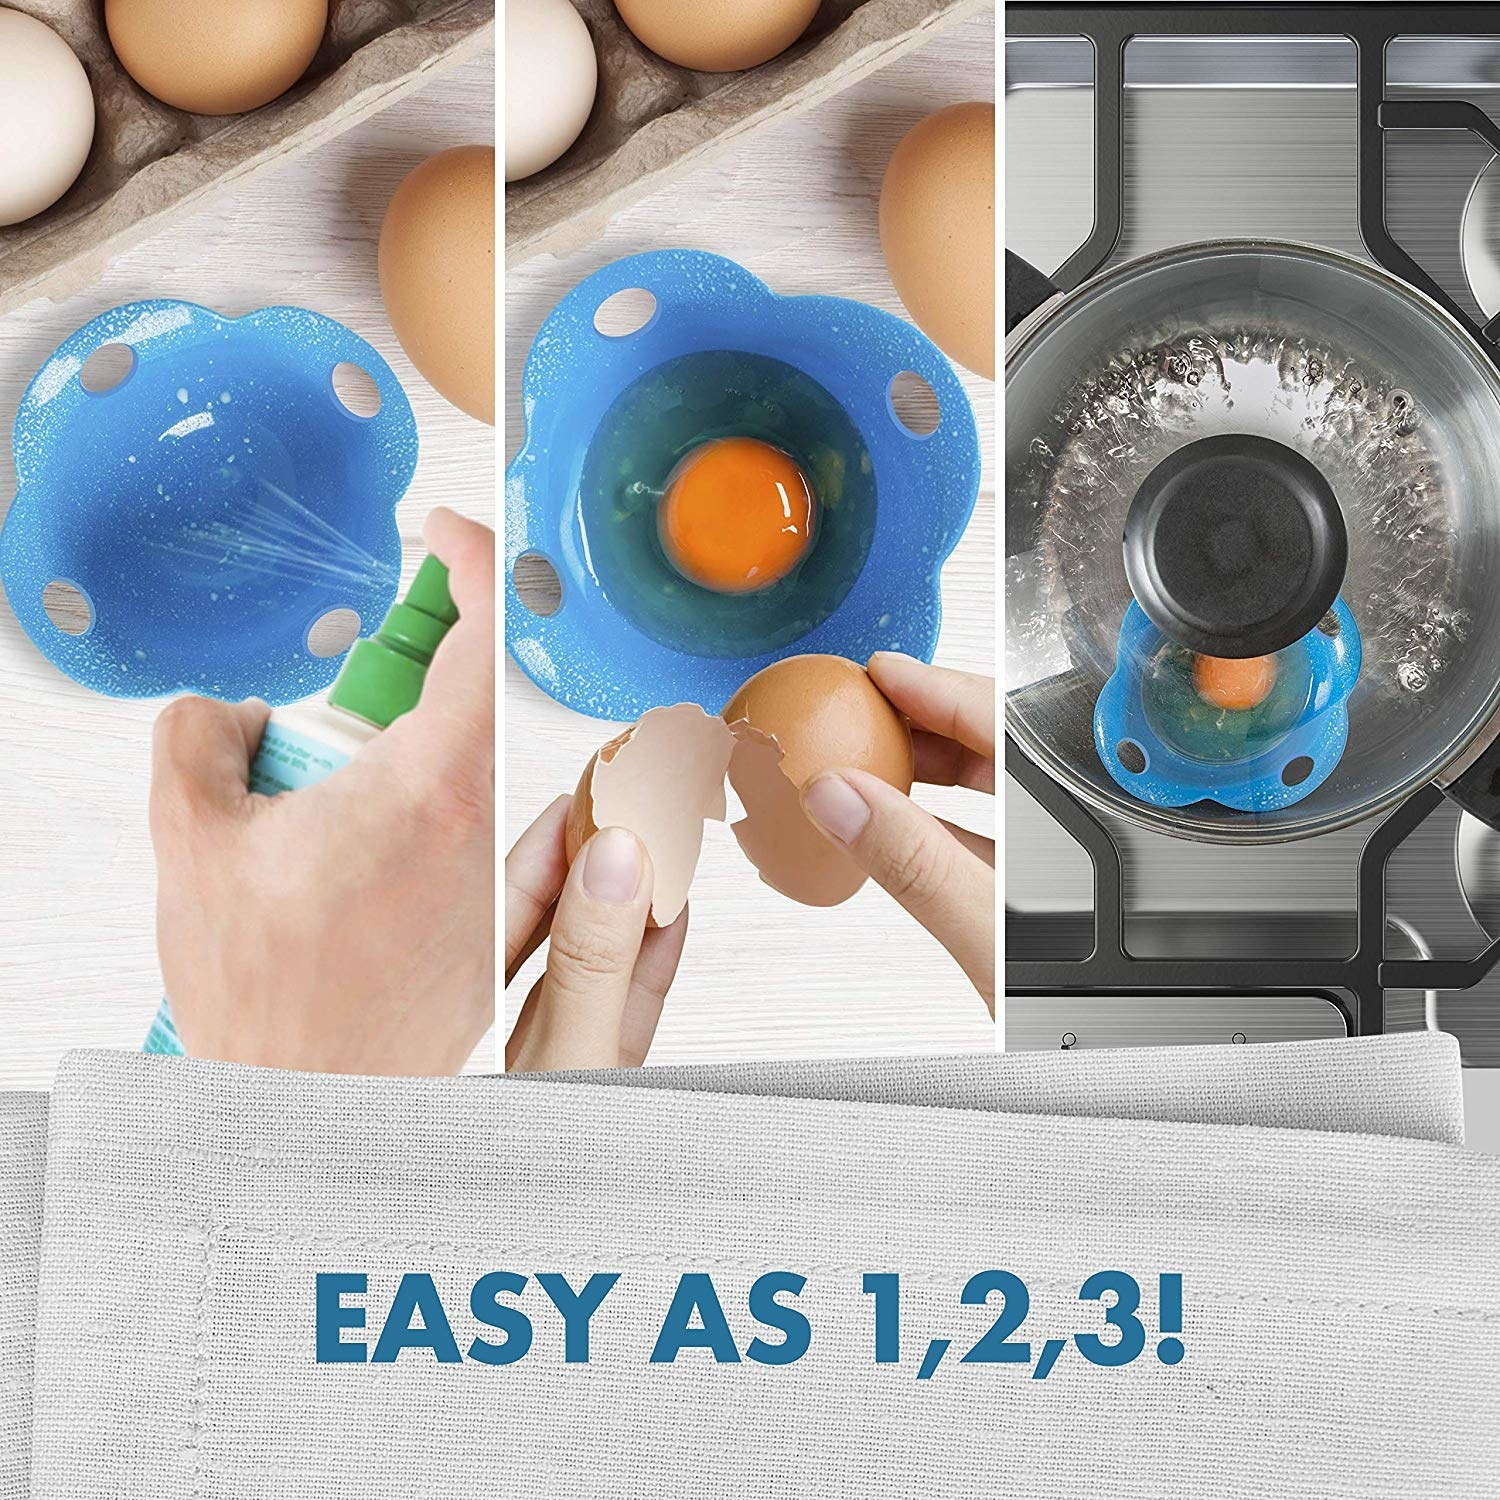 A graphic showing how to use the cups: spray oil inside, crack the egg, and boil the cup in a pot of water